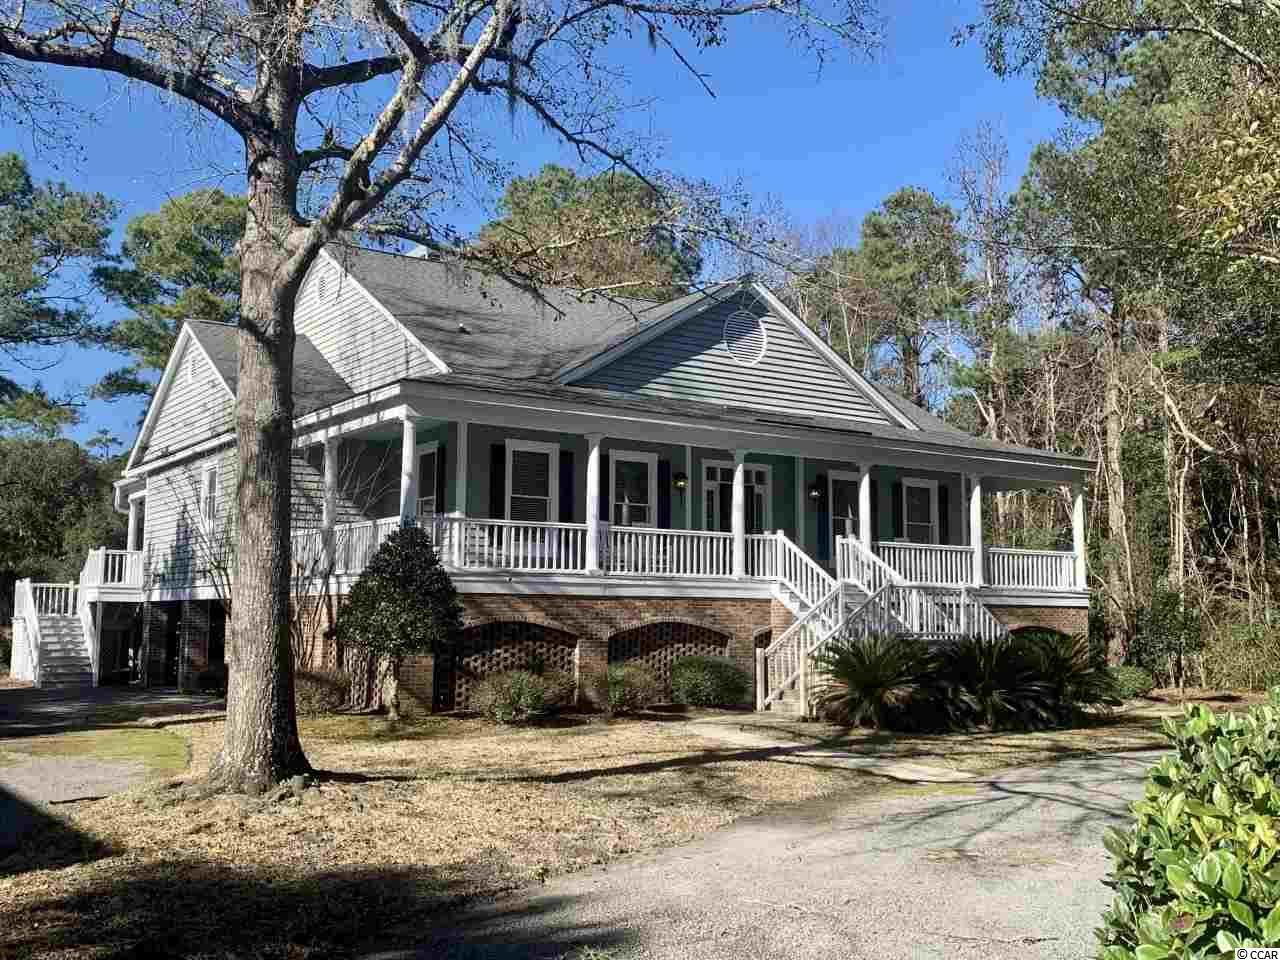 DeBordieu Colony - Golf & Pond Front - Charming Low Country raised home in the heart of DeBordieu Colony . One level living in this 3 bedroom 3 full bath home just of the tee box on the 3rd hole on DeBordieu Pete Dye Championship design.  This large lot has multiple large moss draped oaks, is a half acre in size and backs up to a large 5+ acre pond providing water, golf, and wildlife views.  A large front porch greets you as reach the front entrance. Two spacious guest rooms with 2 full baths are located off the front foyer. Incredible heart pine floors extend through the foyer, living, dining and kitchen spaces. The master bedroom and bath is in the right rear of the home with access to the  rear porch with section both open and screened. Open kitchen, living room, and dinning room show case vaulted ceilings, huge beam ceilings and a double sided fireplace.  Lower level of the home is open garage space and storage for bikes, boats, golf cart and more. DeBordieu Colony is an oceanfront community located just south of Pawleys Island, South Carolina featuring private golf and tennis, saltwater creek access to the ocean, a 24 hour manned security gate, and luxury homes and villas surrounded by thousands of acres of wildlife and nature preserves. People who have been here say there is no place like DeBordieu. Come see for yourself!